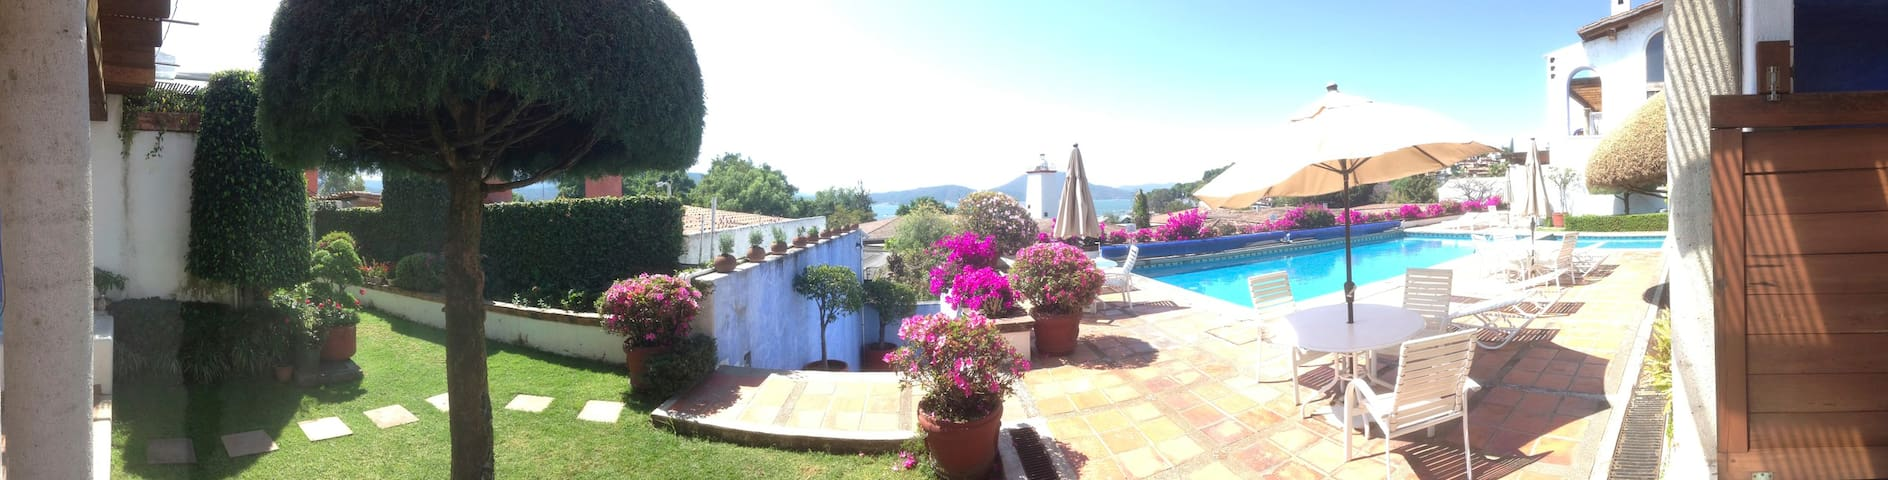 Best Location in Valle de Bravo - Valle de Bravo - Appartement